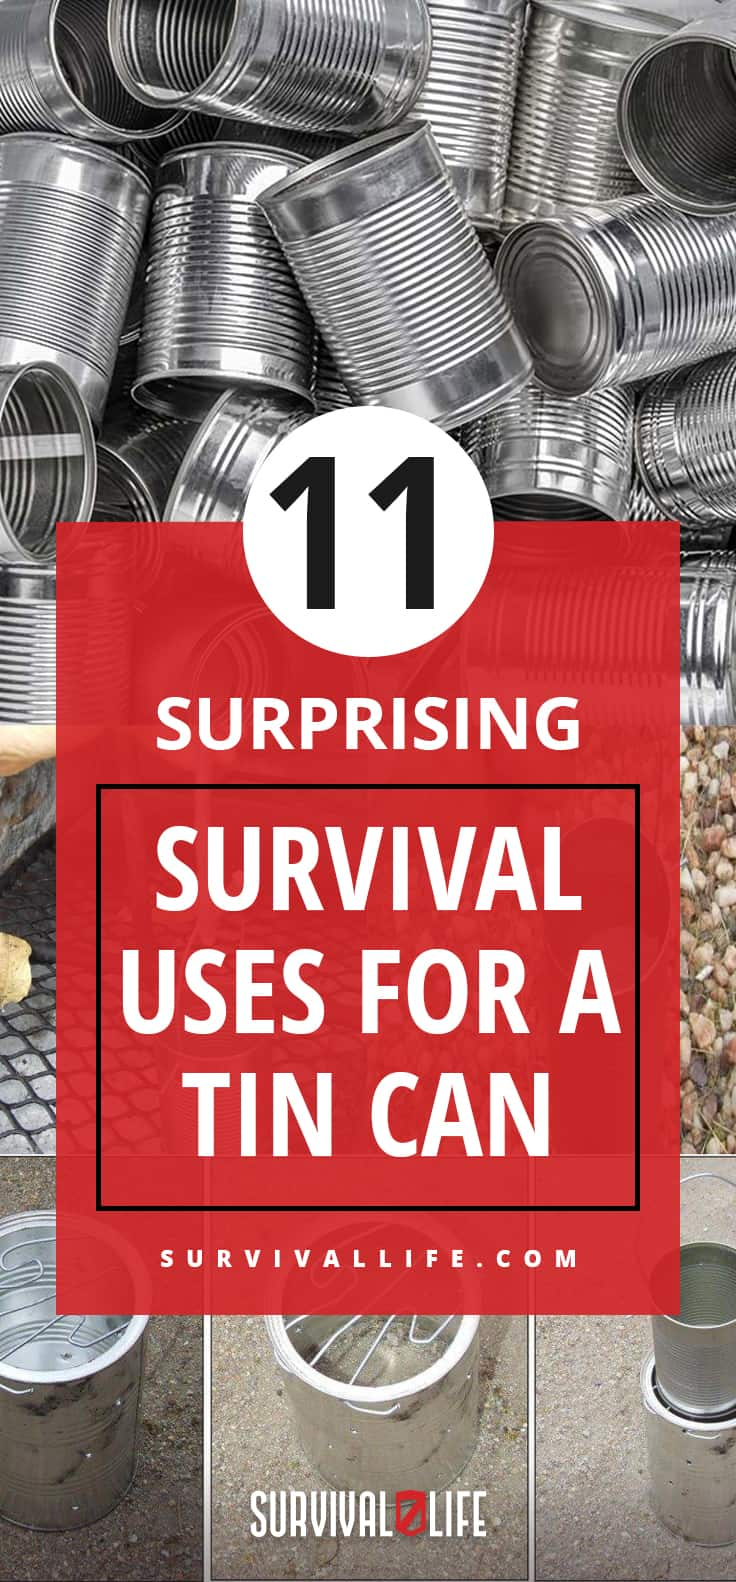 Tin Can | 11 Surprising Survival Uses for a Tin Can